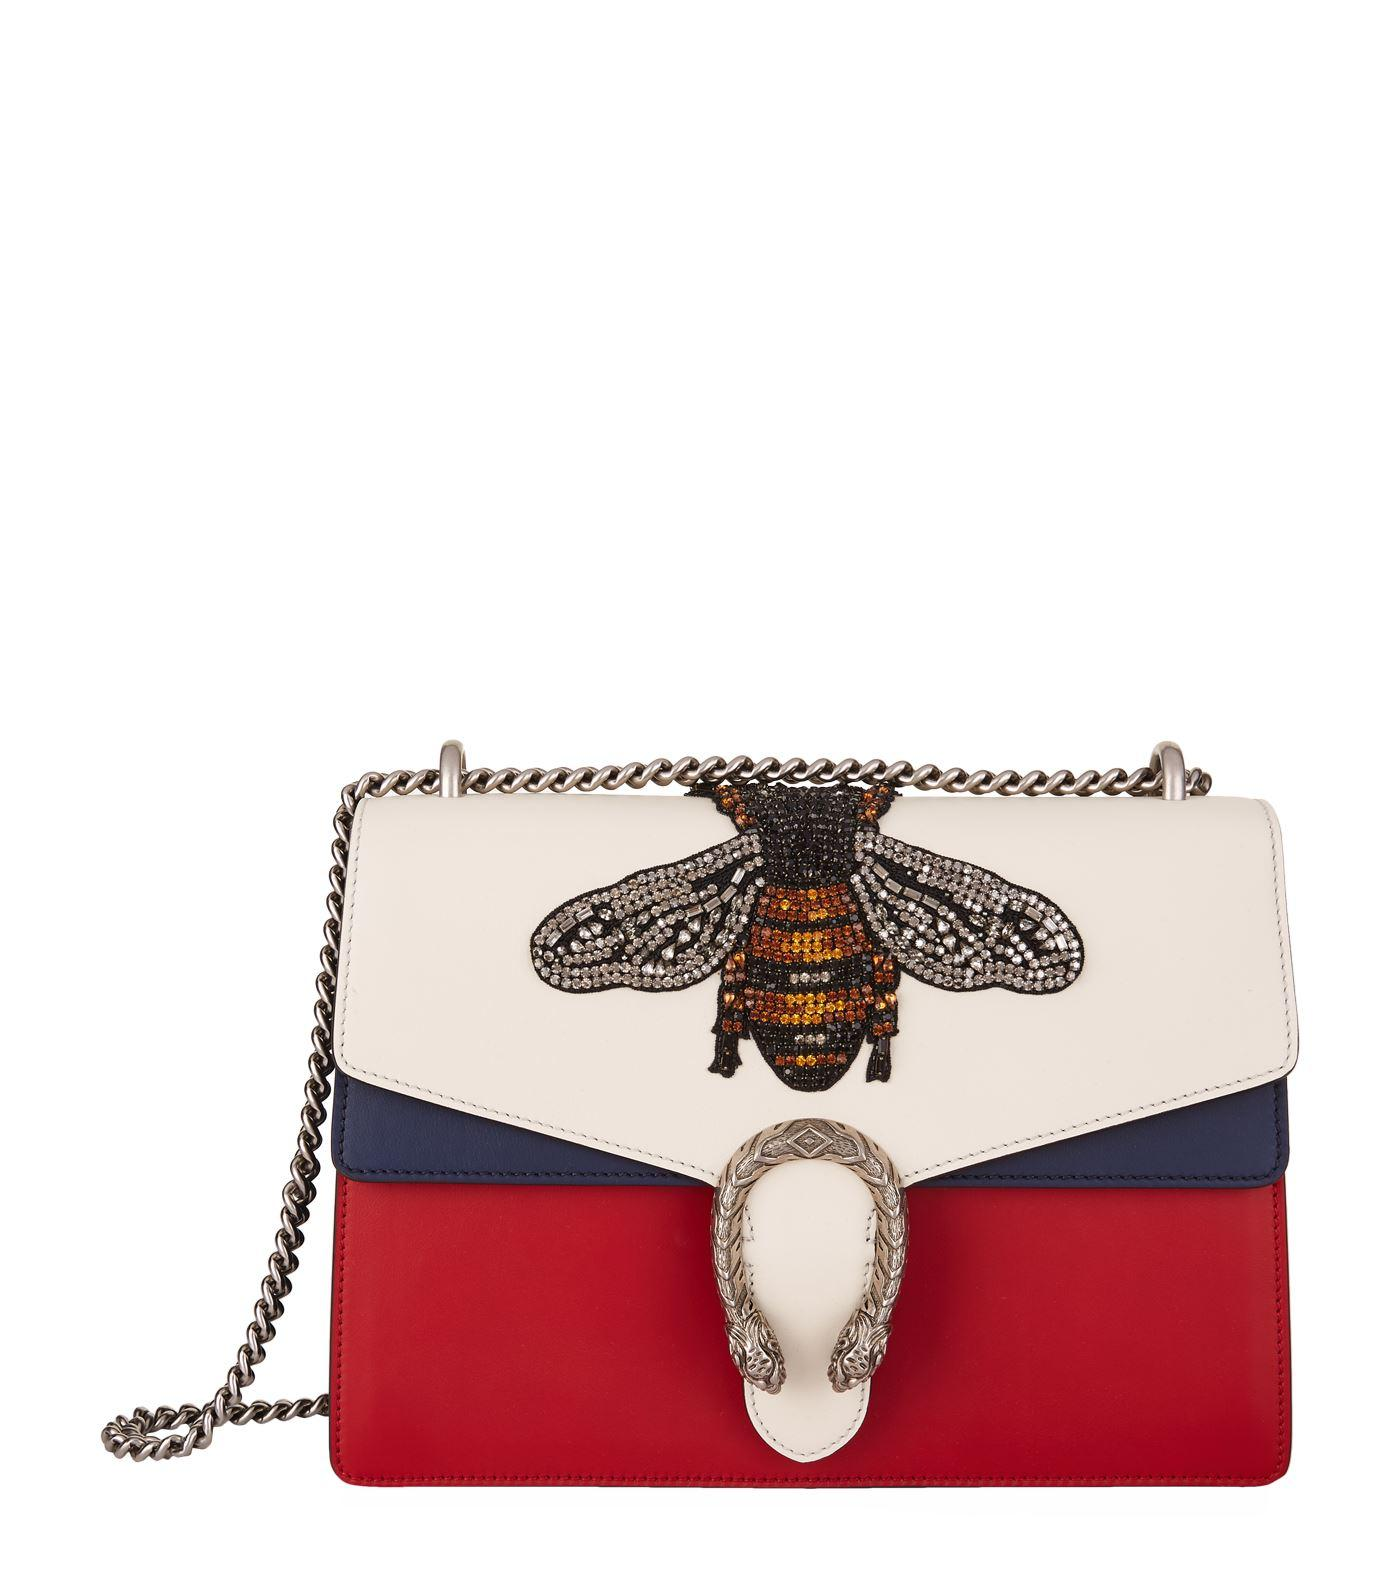 c04b1e3c251 Gucci Women's Dionysus Crystal Embellished Bee Crossbody Bag In Red, White  And Navy